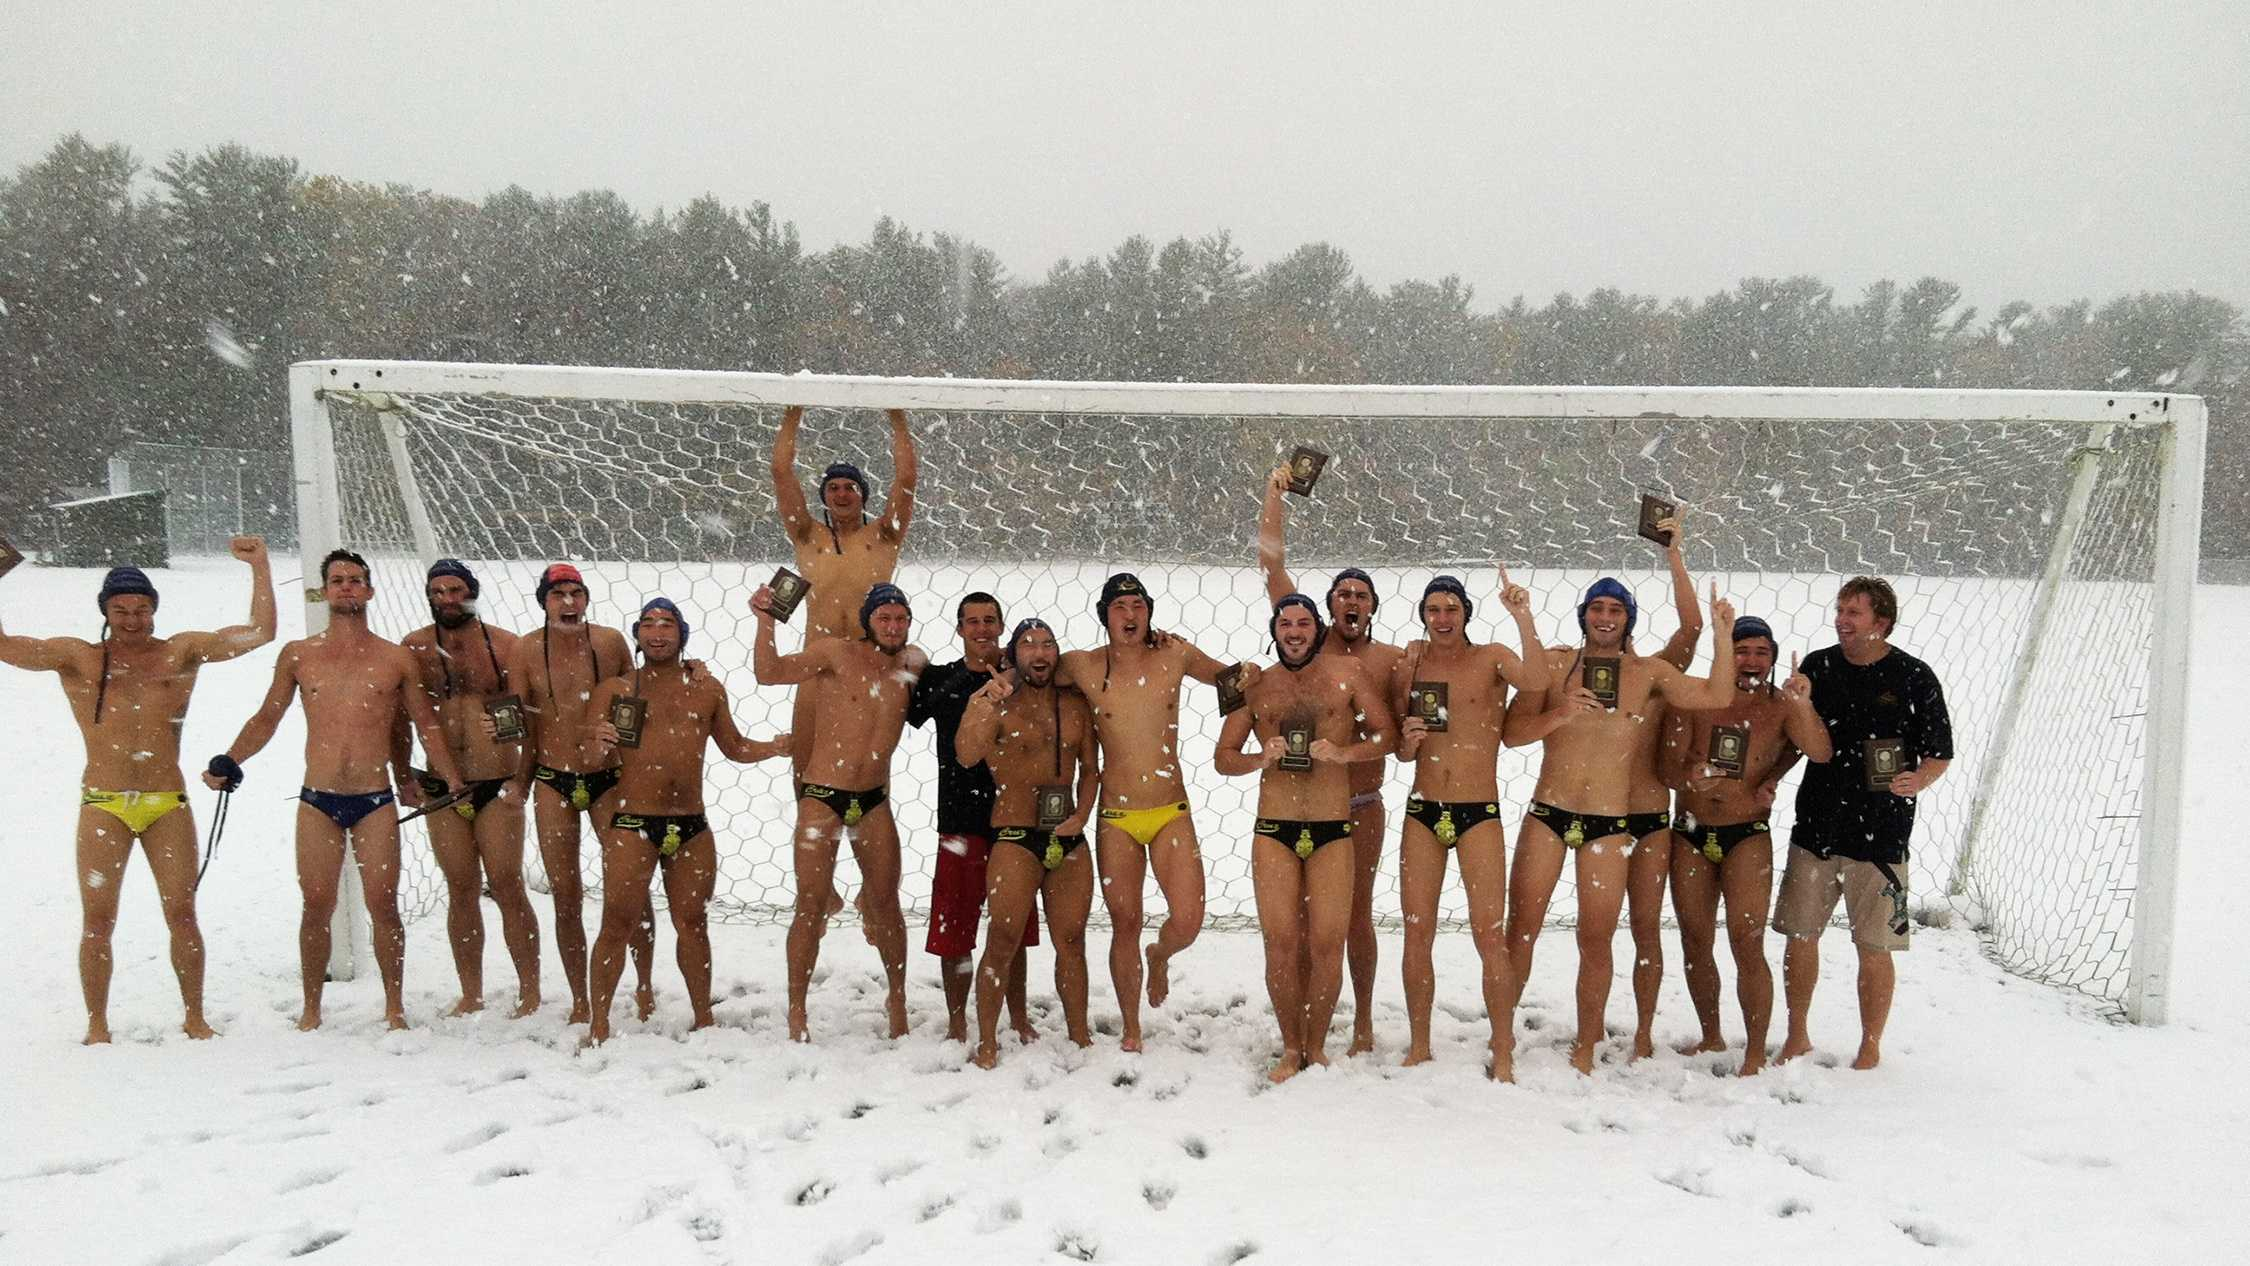 UC Santa Cruz's water polo team is not afraid of chilly temperatures.